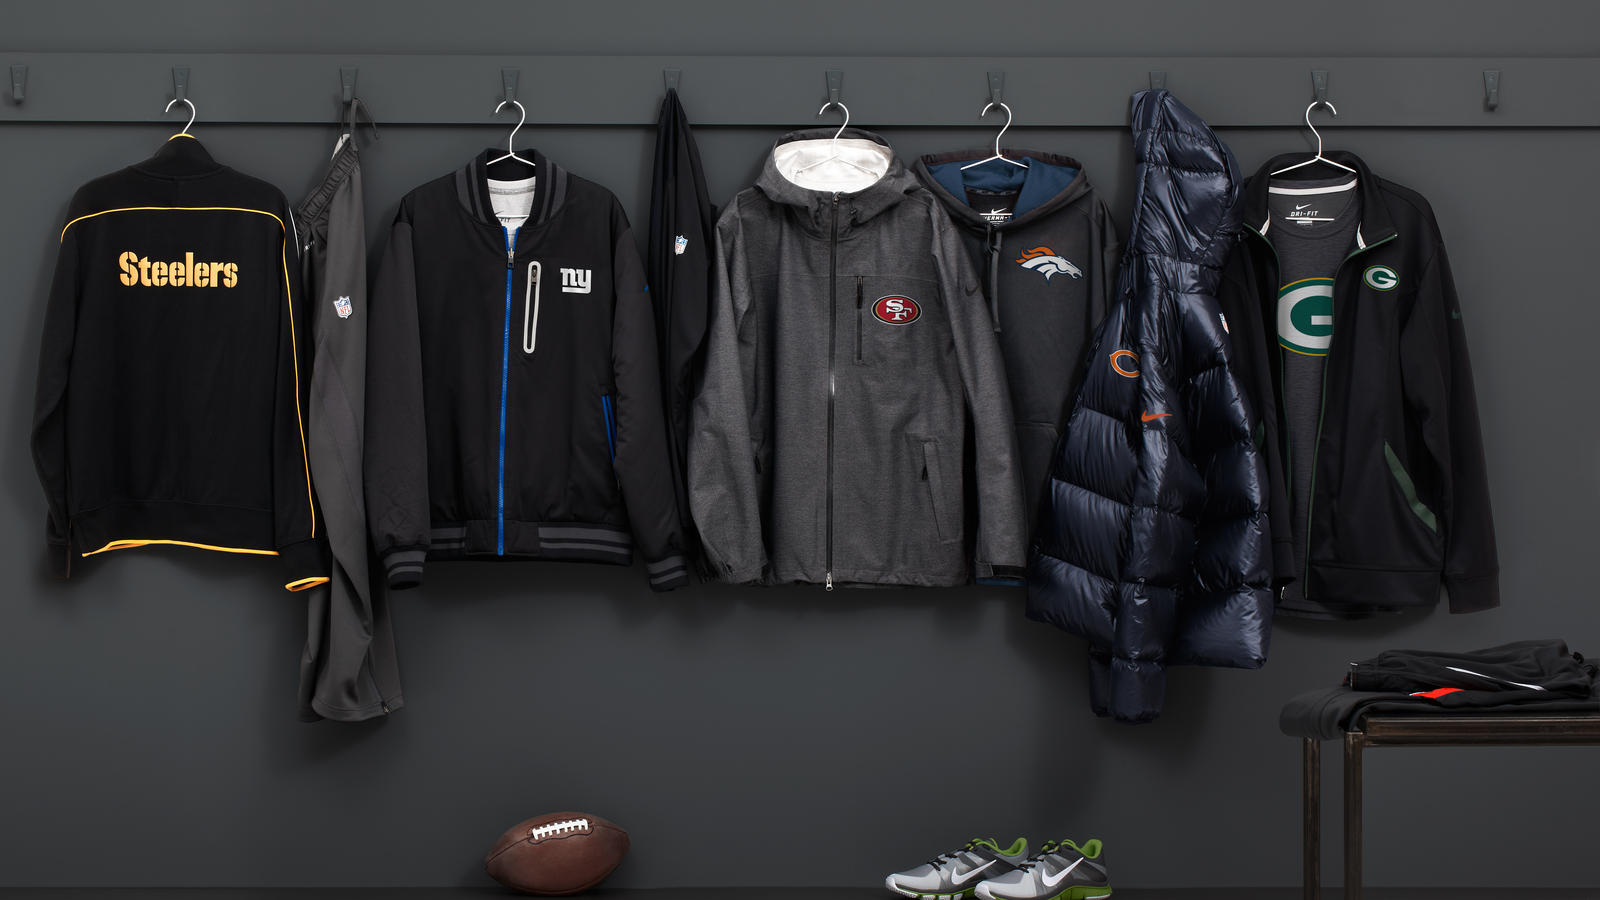 new arrival 1c77e 4f44e Authentic Football Style: The Elite 51 Sideline Collection ...